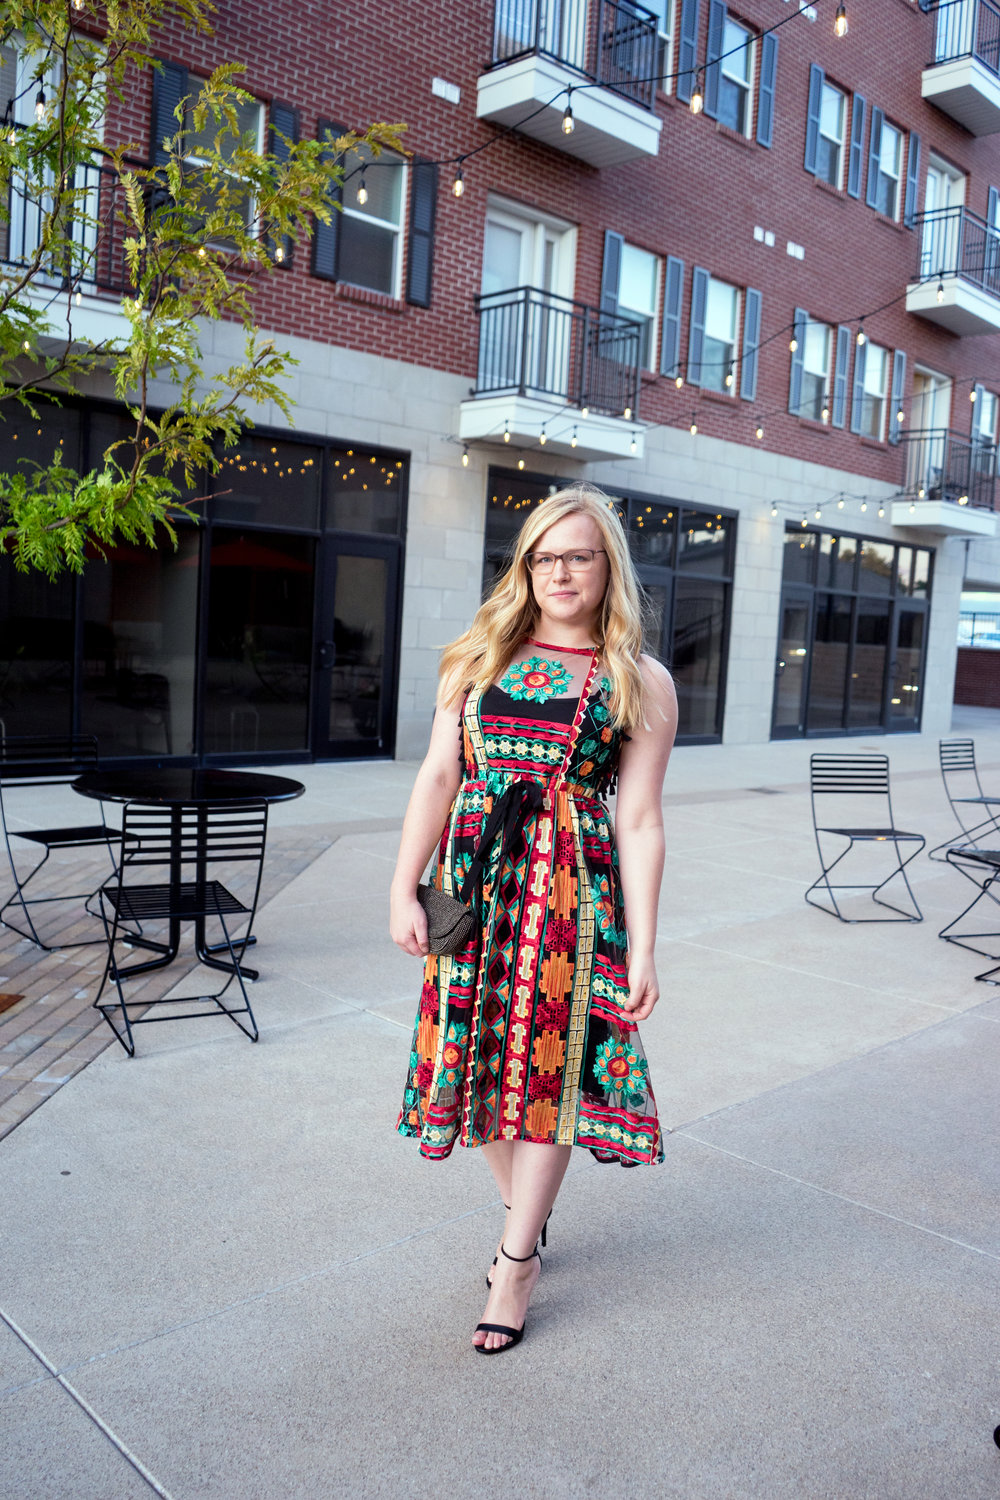 Maggie a la Mode - Anthropologie Eva Franco Saskia Embroidered Dress, Steve Madden Stecy Heels